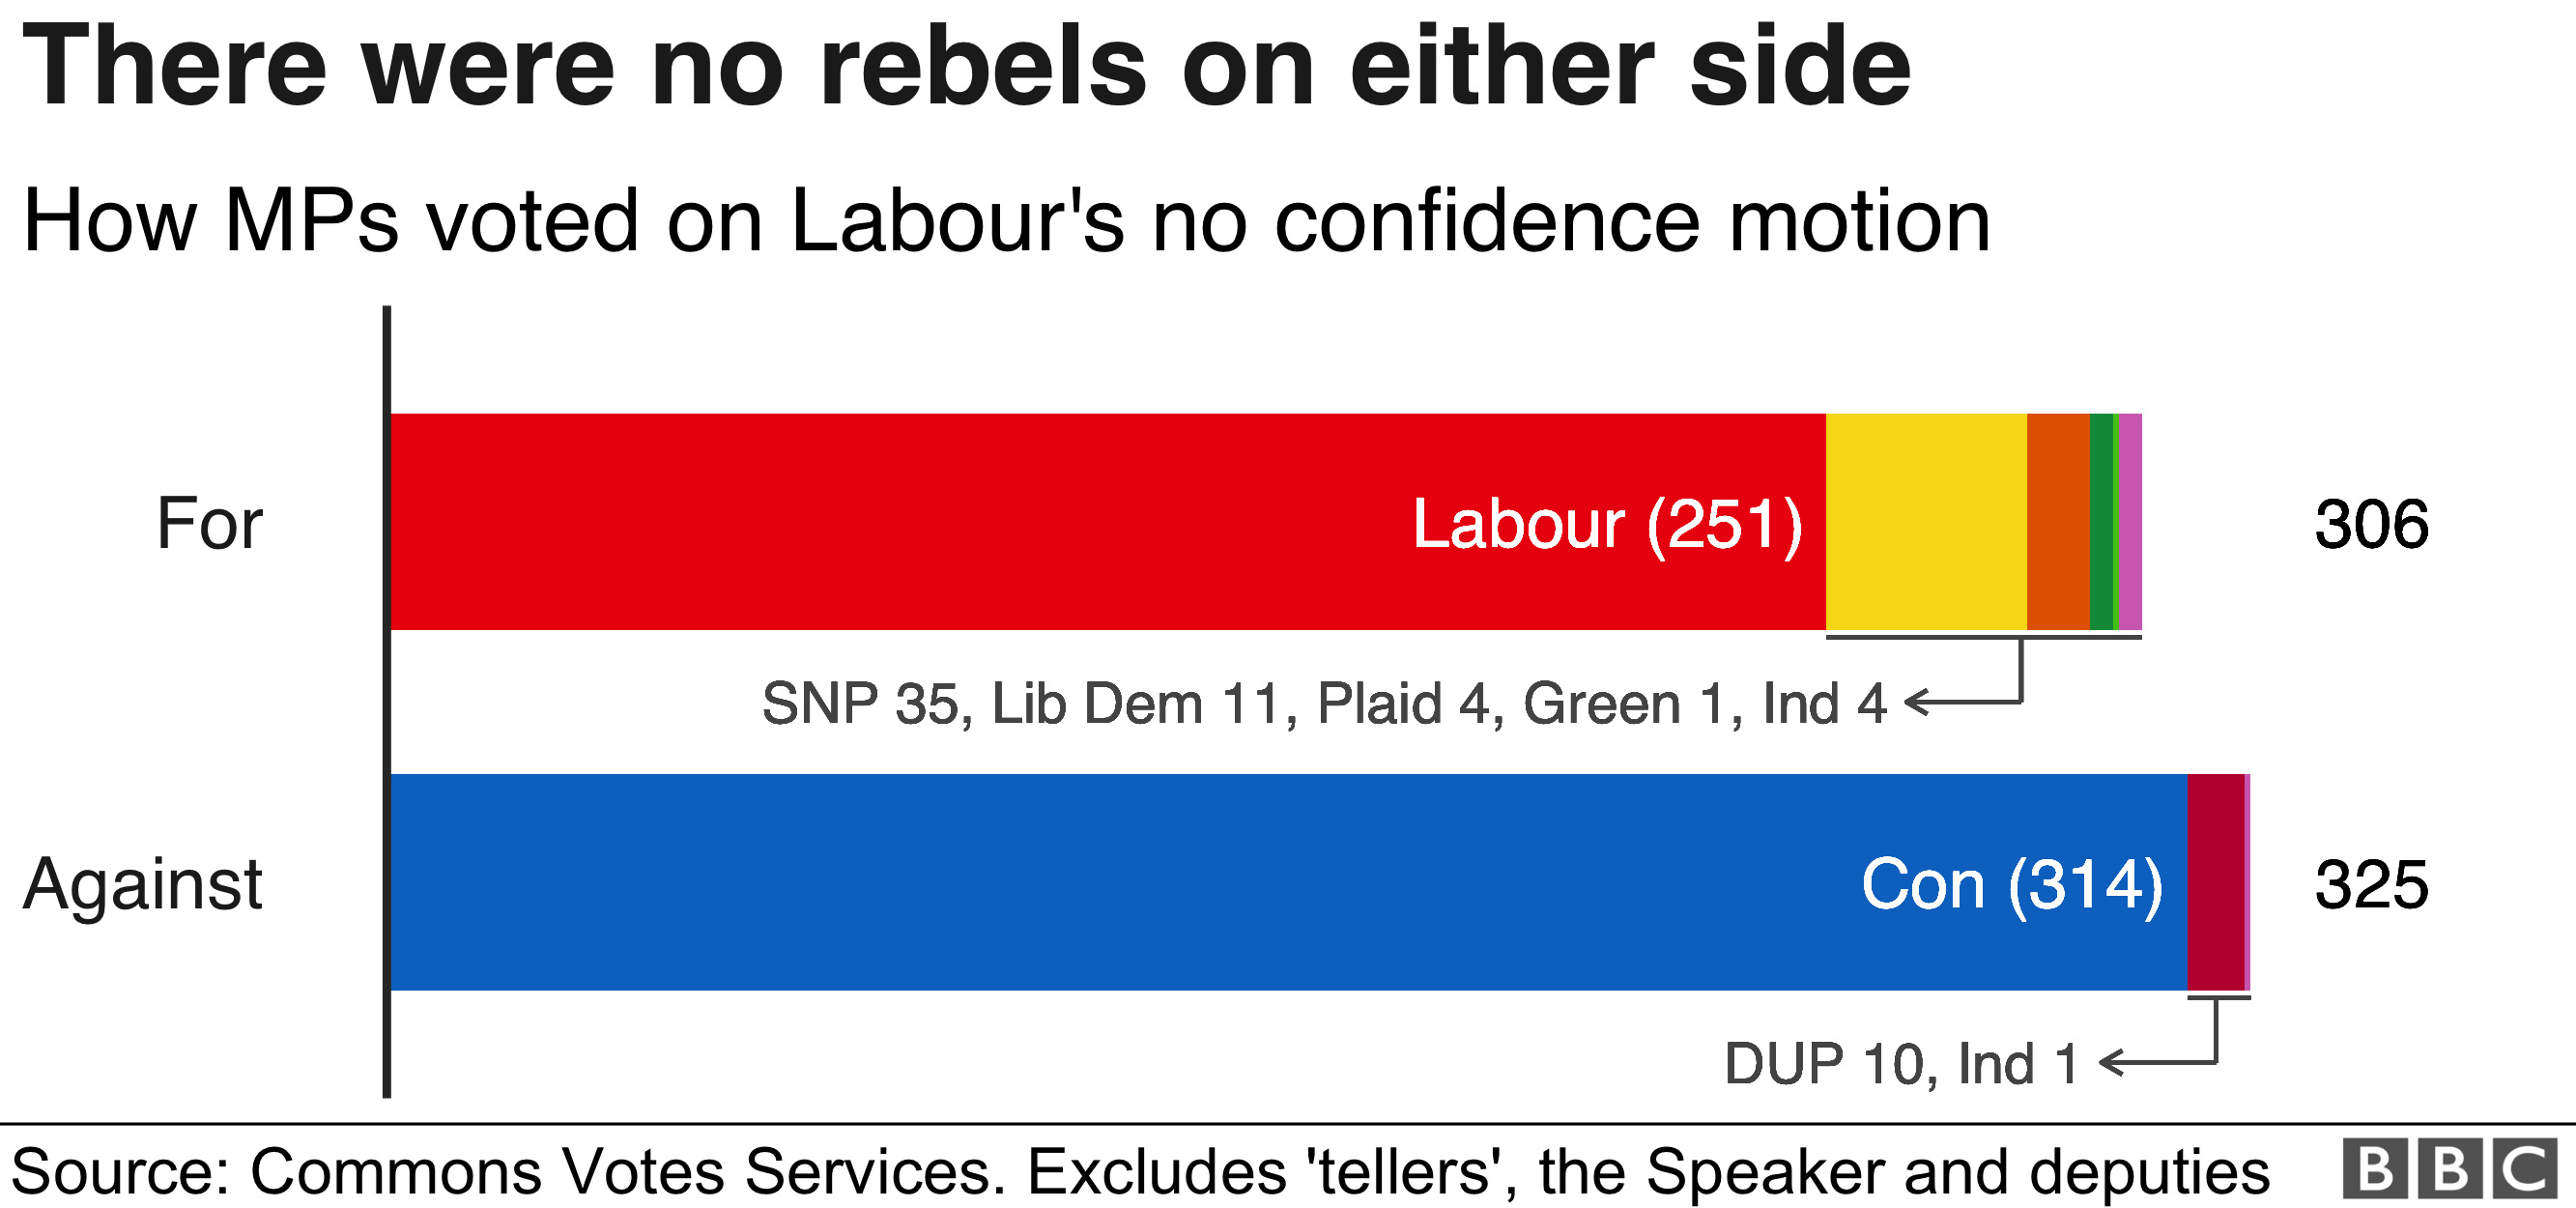 Chart showing how MPs rejected the motion of no confidence